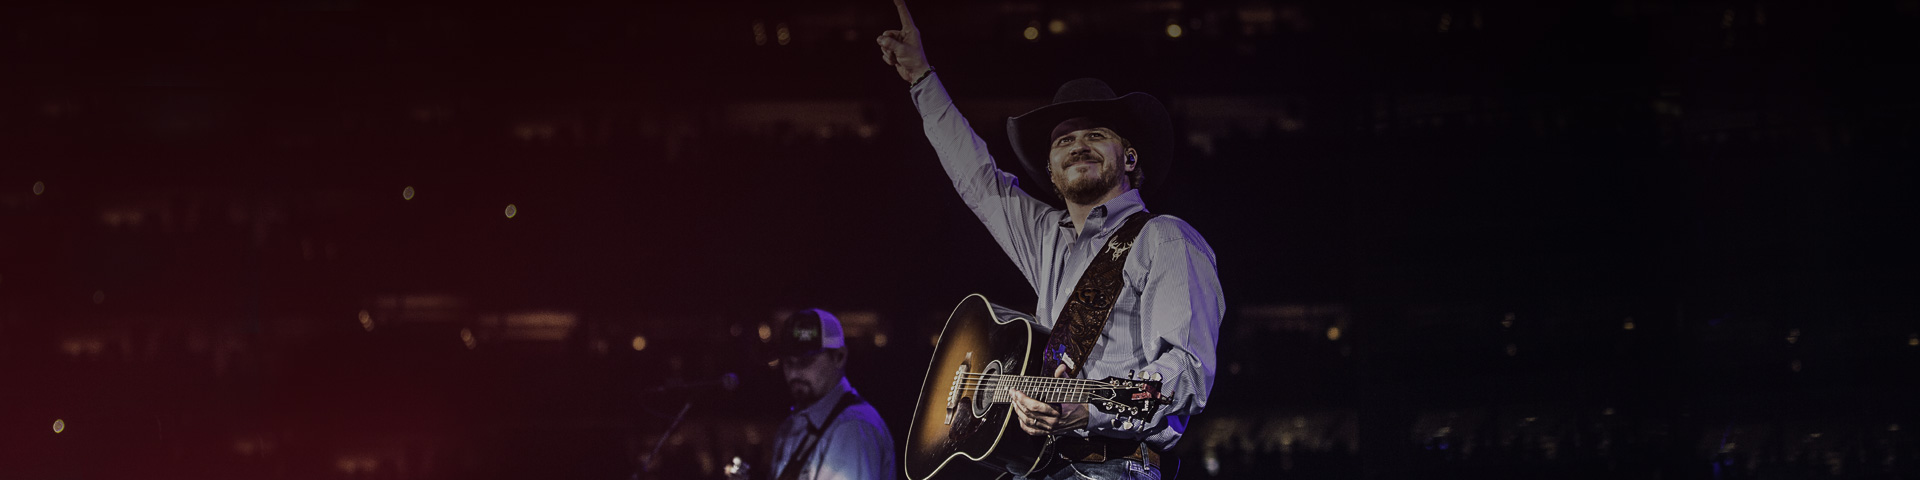 johnson tour cody johnson